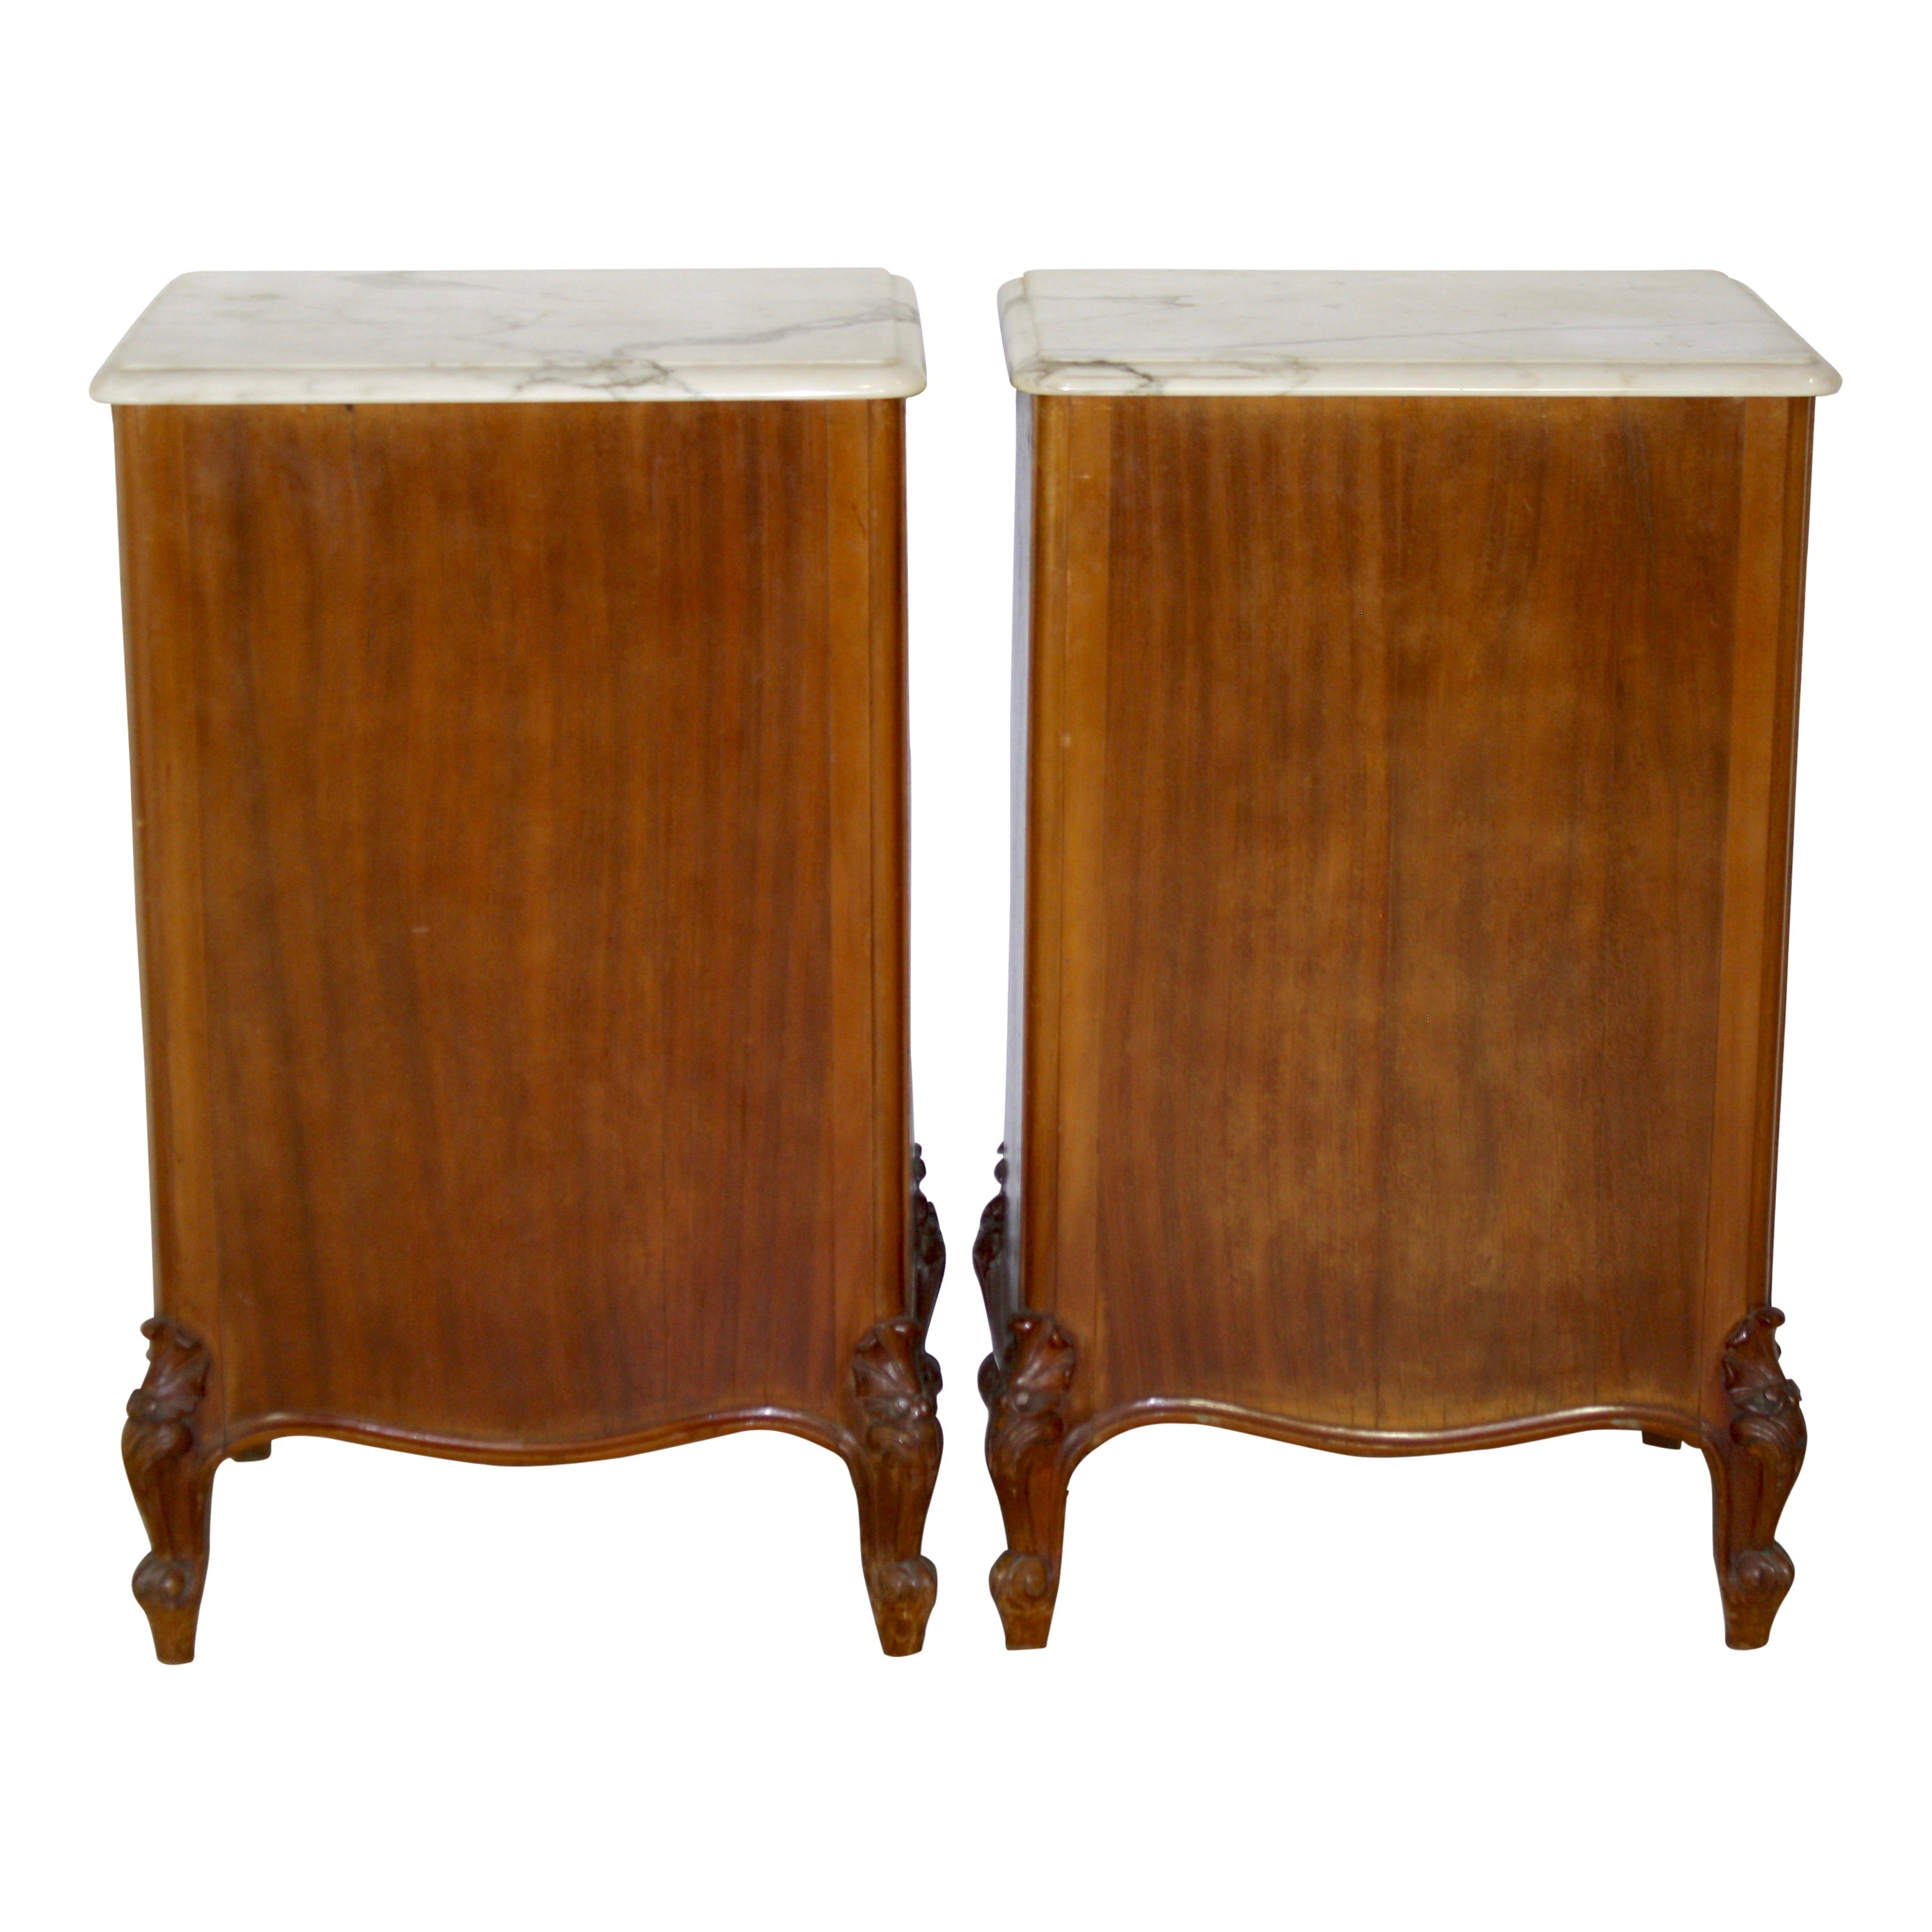 Louis XV Walnut Nightstands with Marble Tops, Set of Two